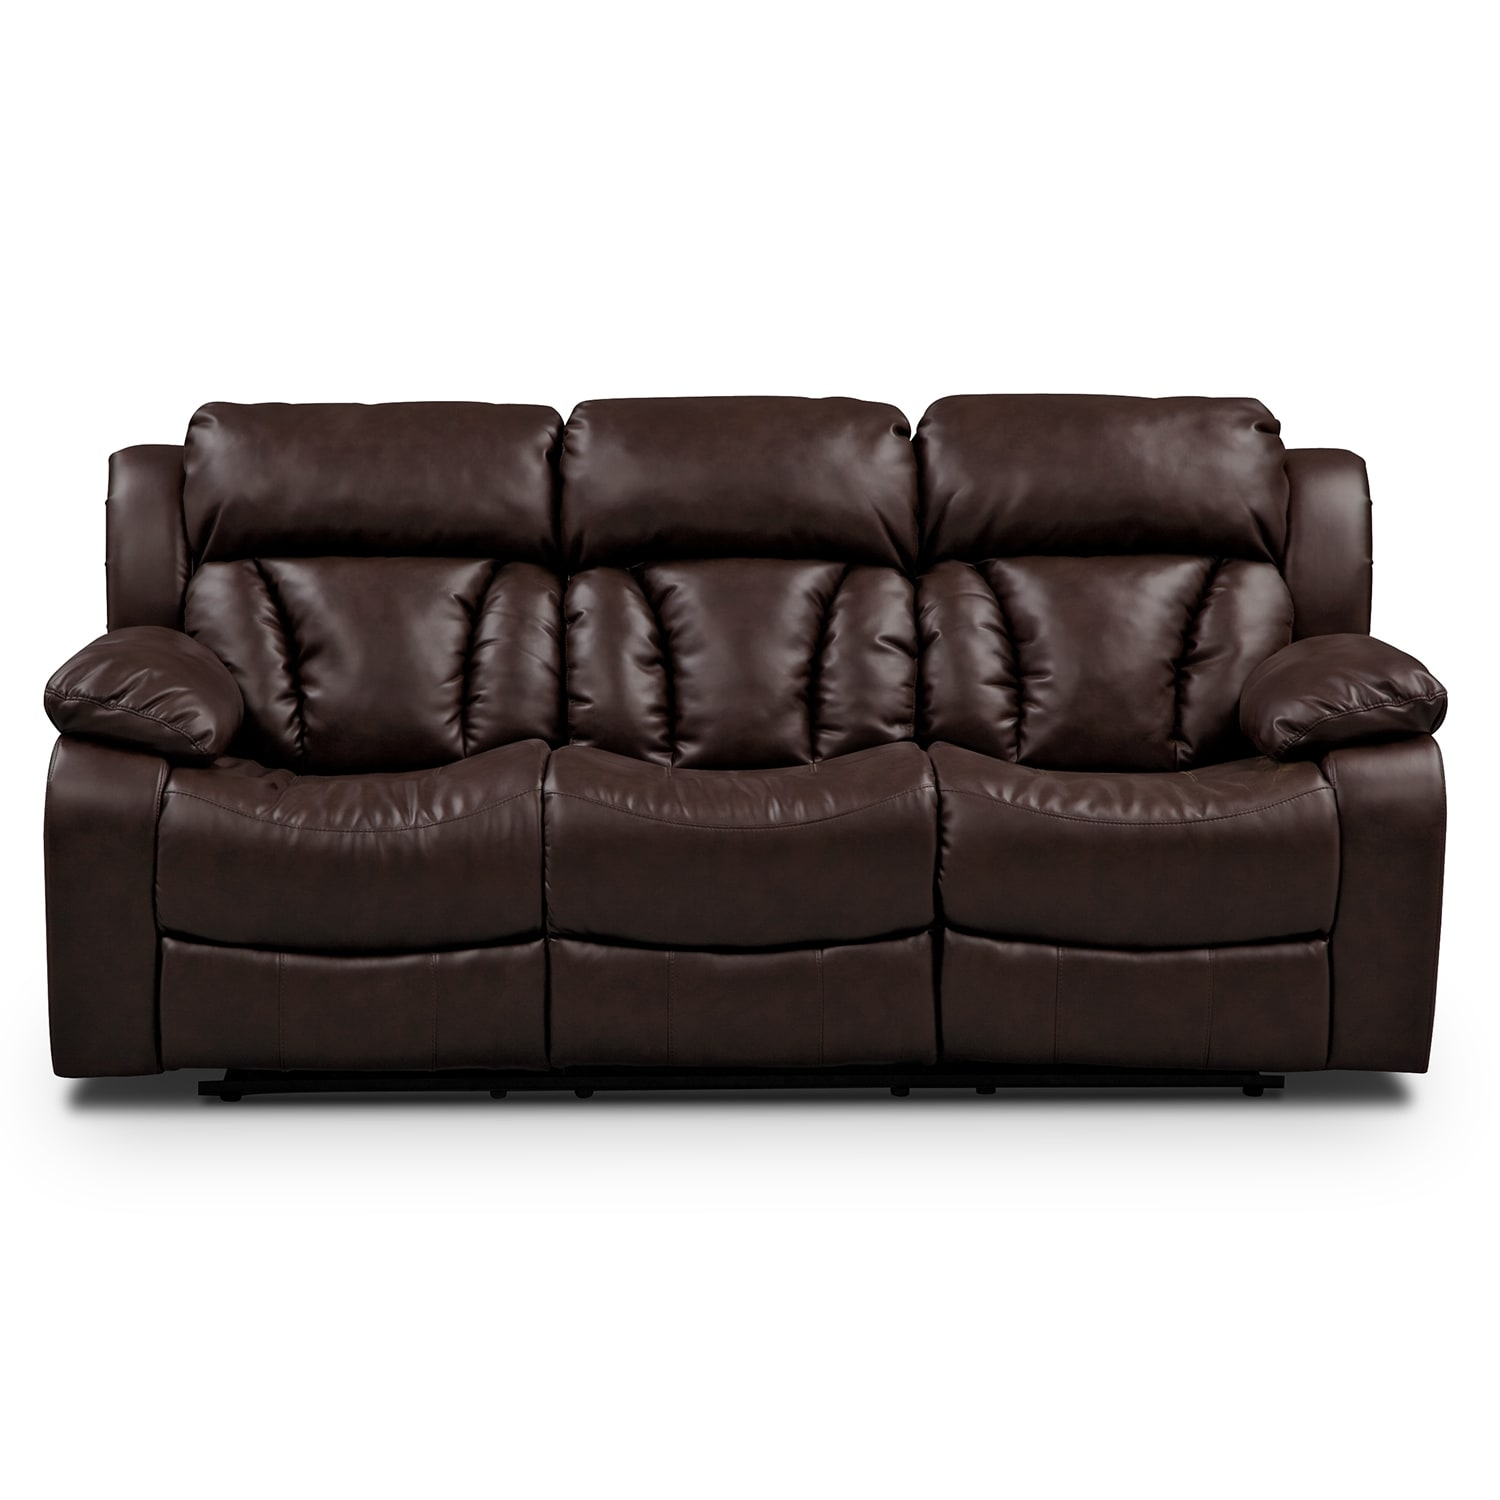 Kit Leather Reclining Sectional besides Marille 2pc Reclining Sofa Set In Dark Brown Bonded Leather Match besides Sc107 moreover Man Cave Sofas as well 15105186. on brown leather reclining sofa sets